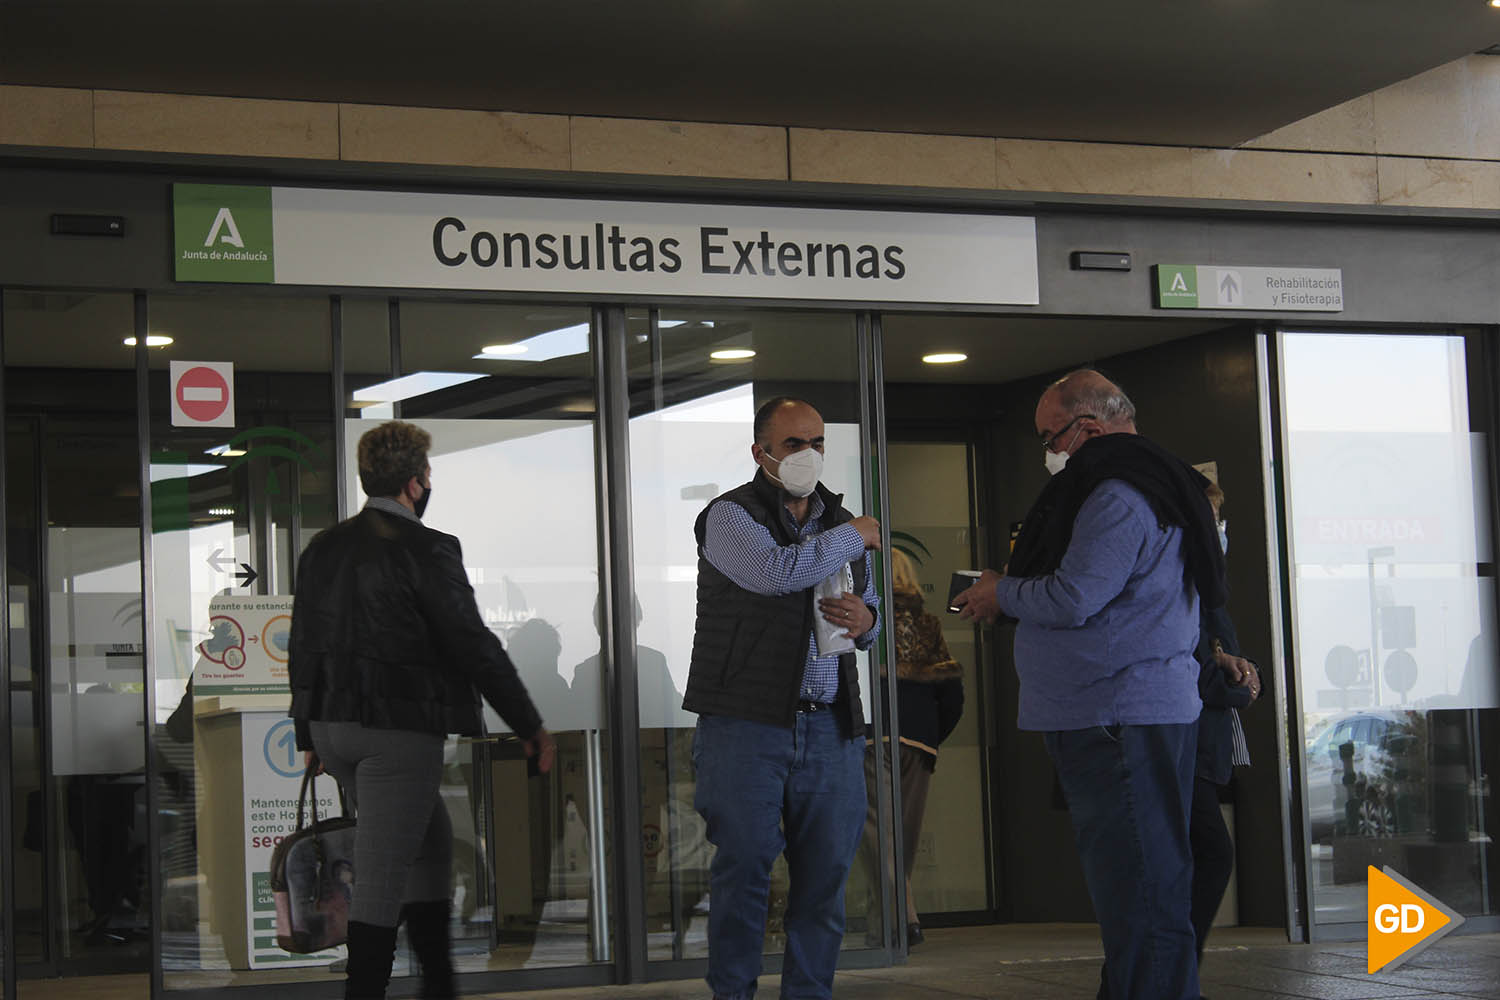 ENTRADA CONSULTAS EXTERNAS HOSPITAL PTS David Canca 16